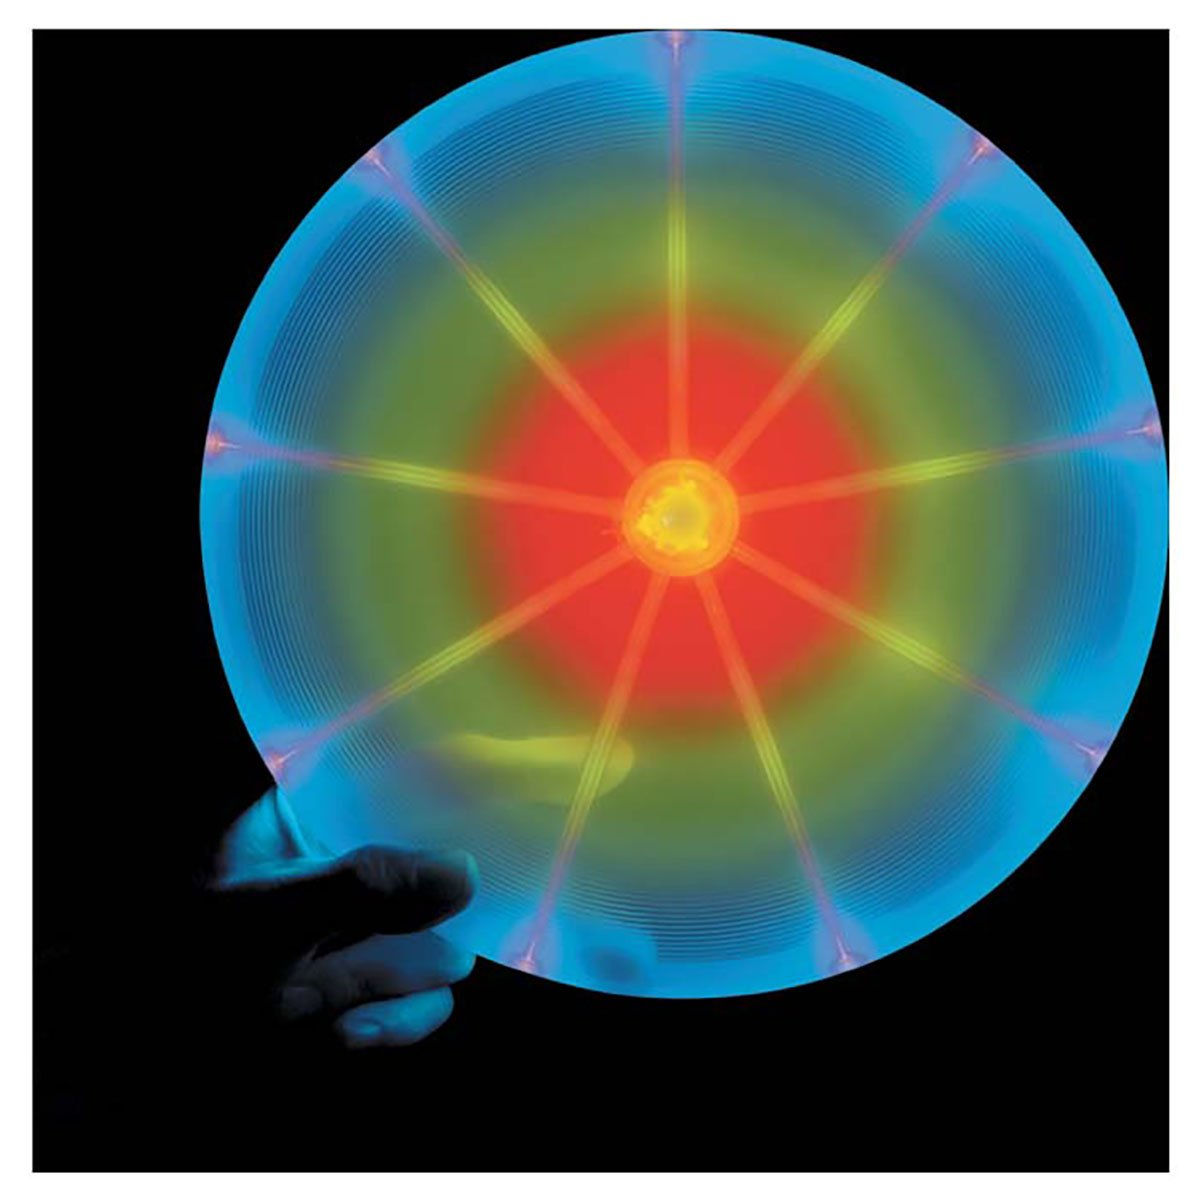 Frisbee LED Luminoso Nite Ize Multicolor-2 27cm 180 gramos